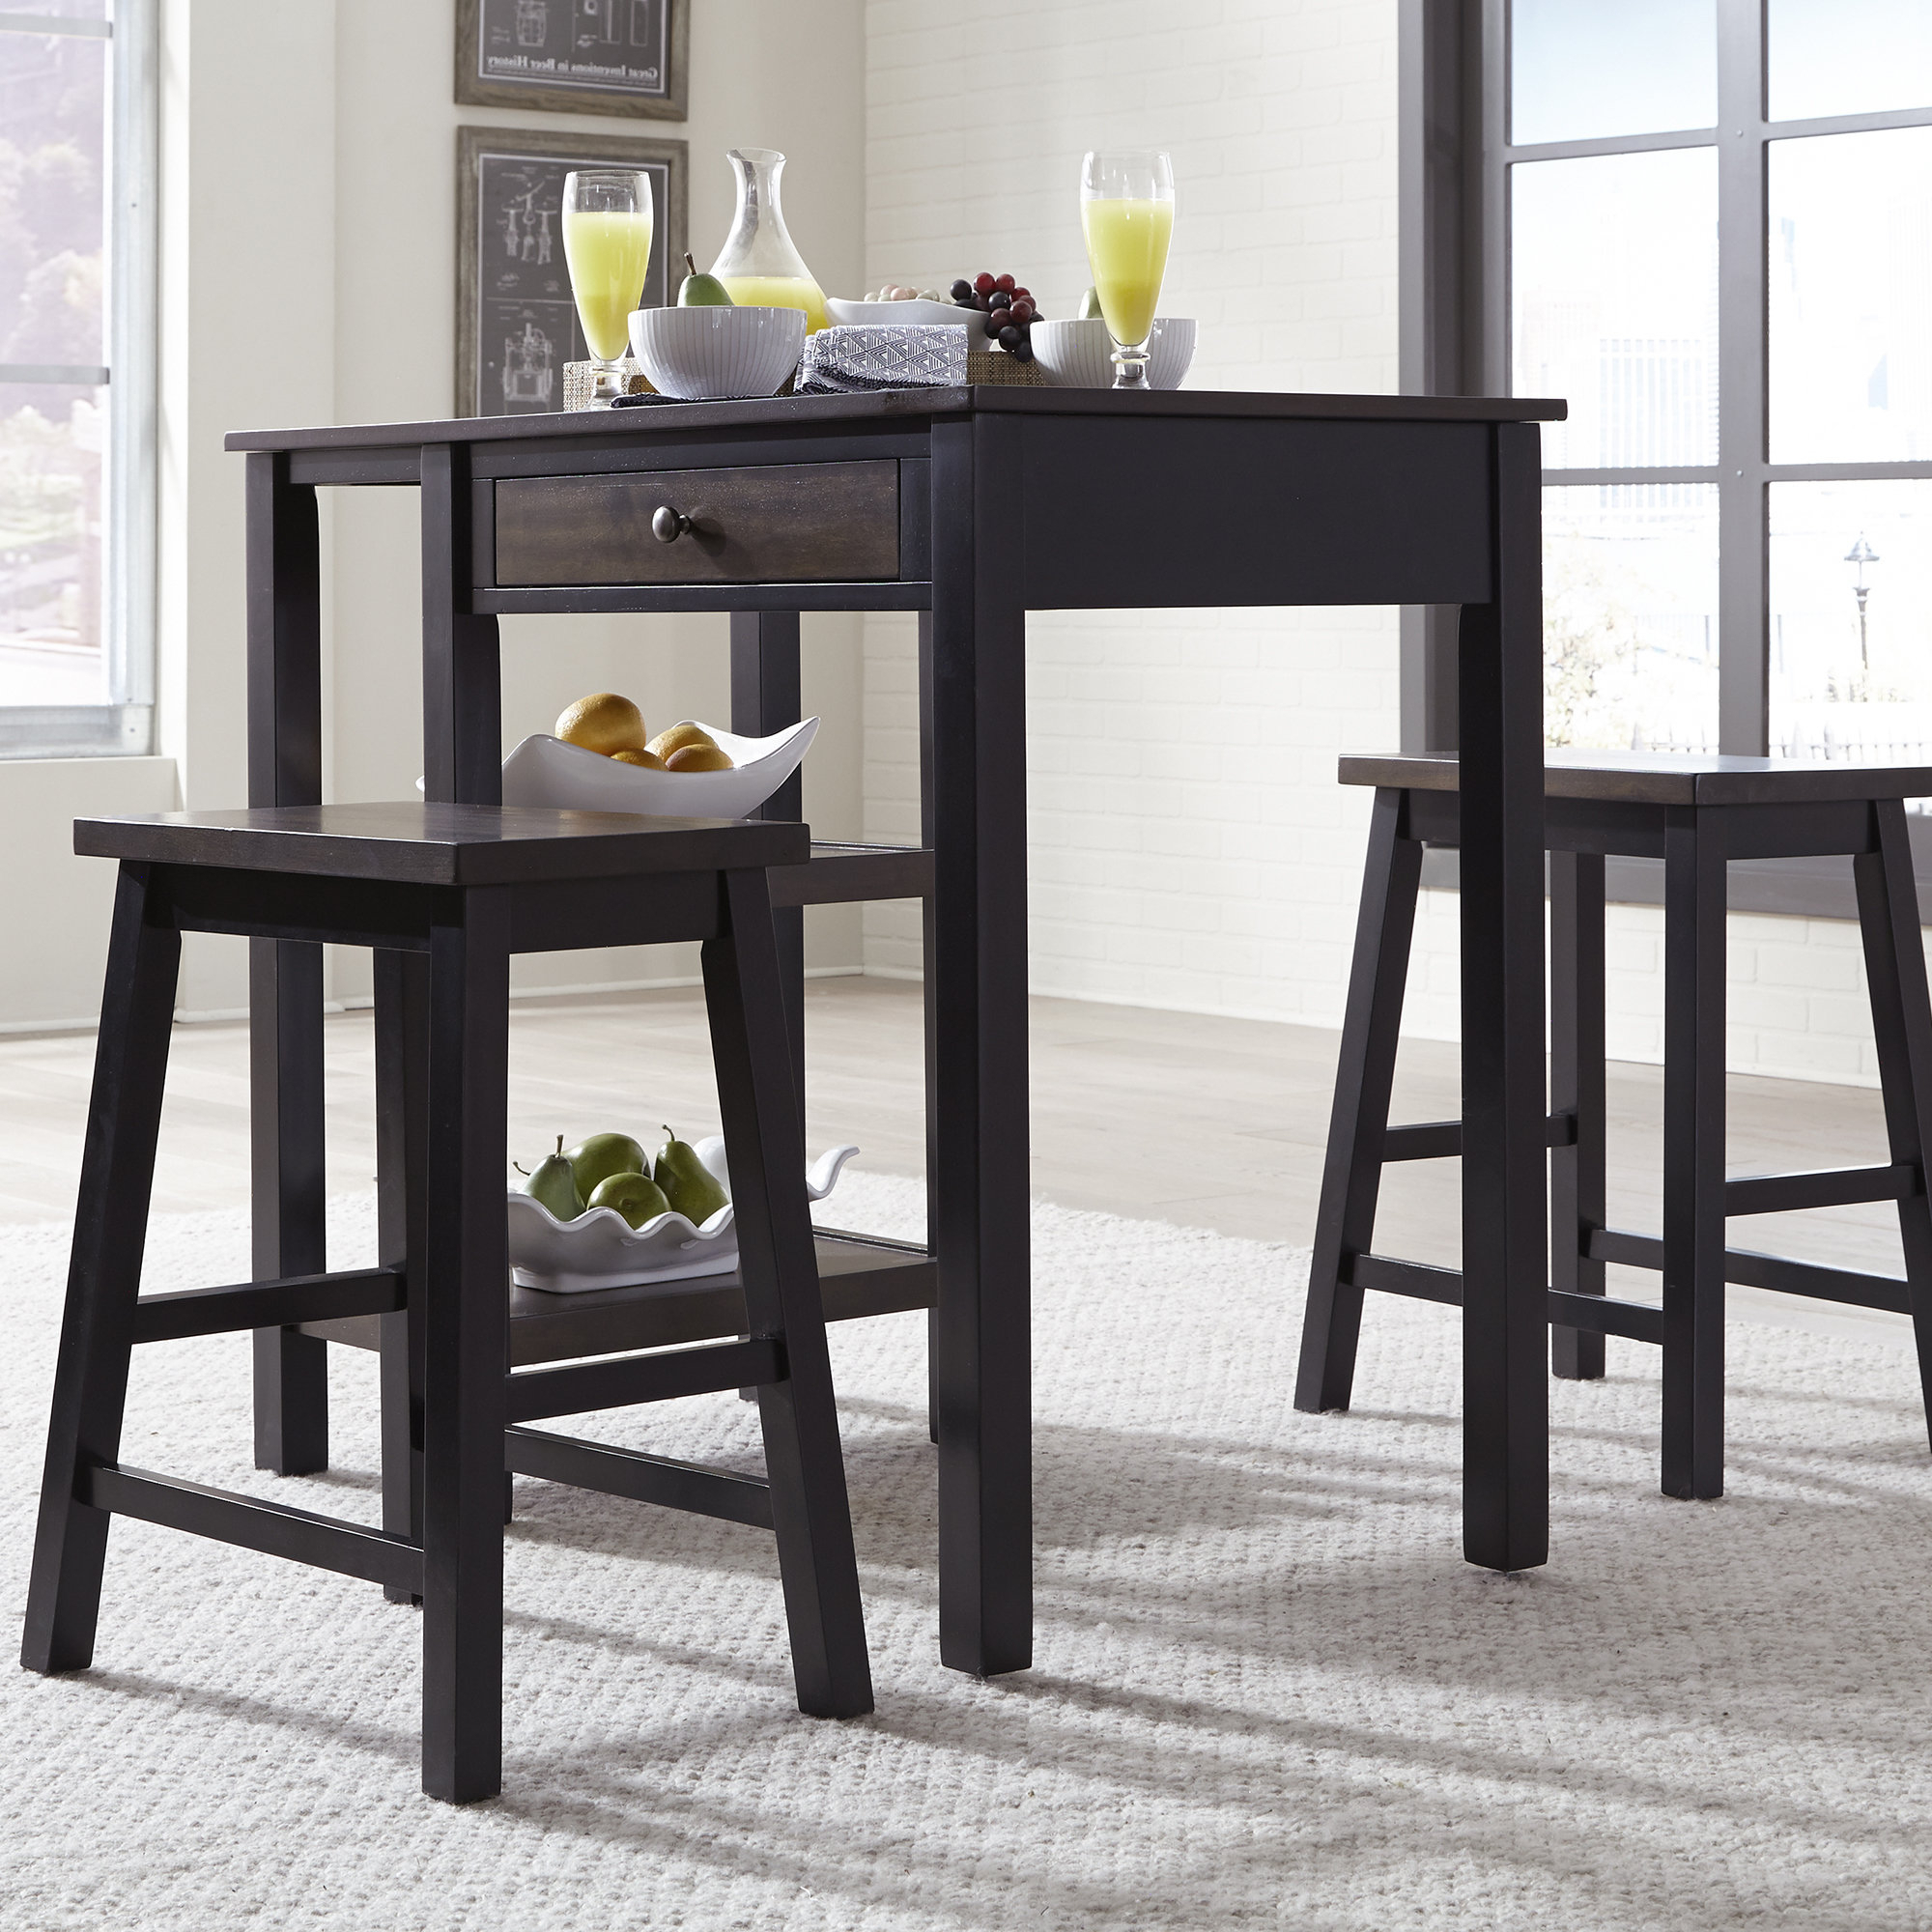 Most Up To Date Emmeline 5 Piece Breakfast Nook Dining Sets Pertaining To Winston Porter Swigart 3 Piece Breakfast Nook Dining Set (View 8 of 25)